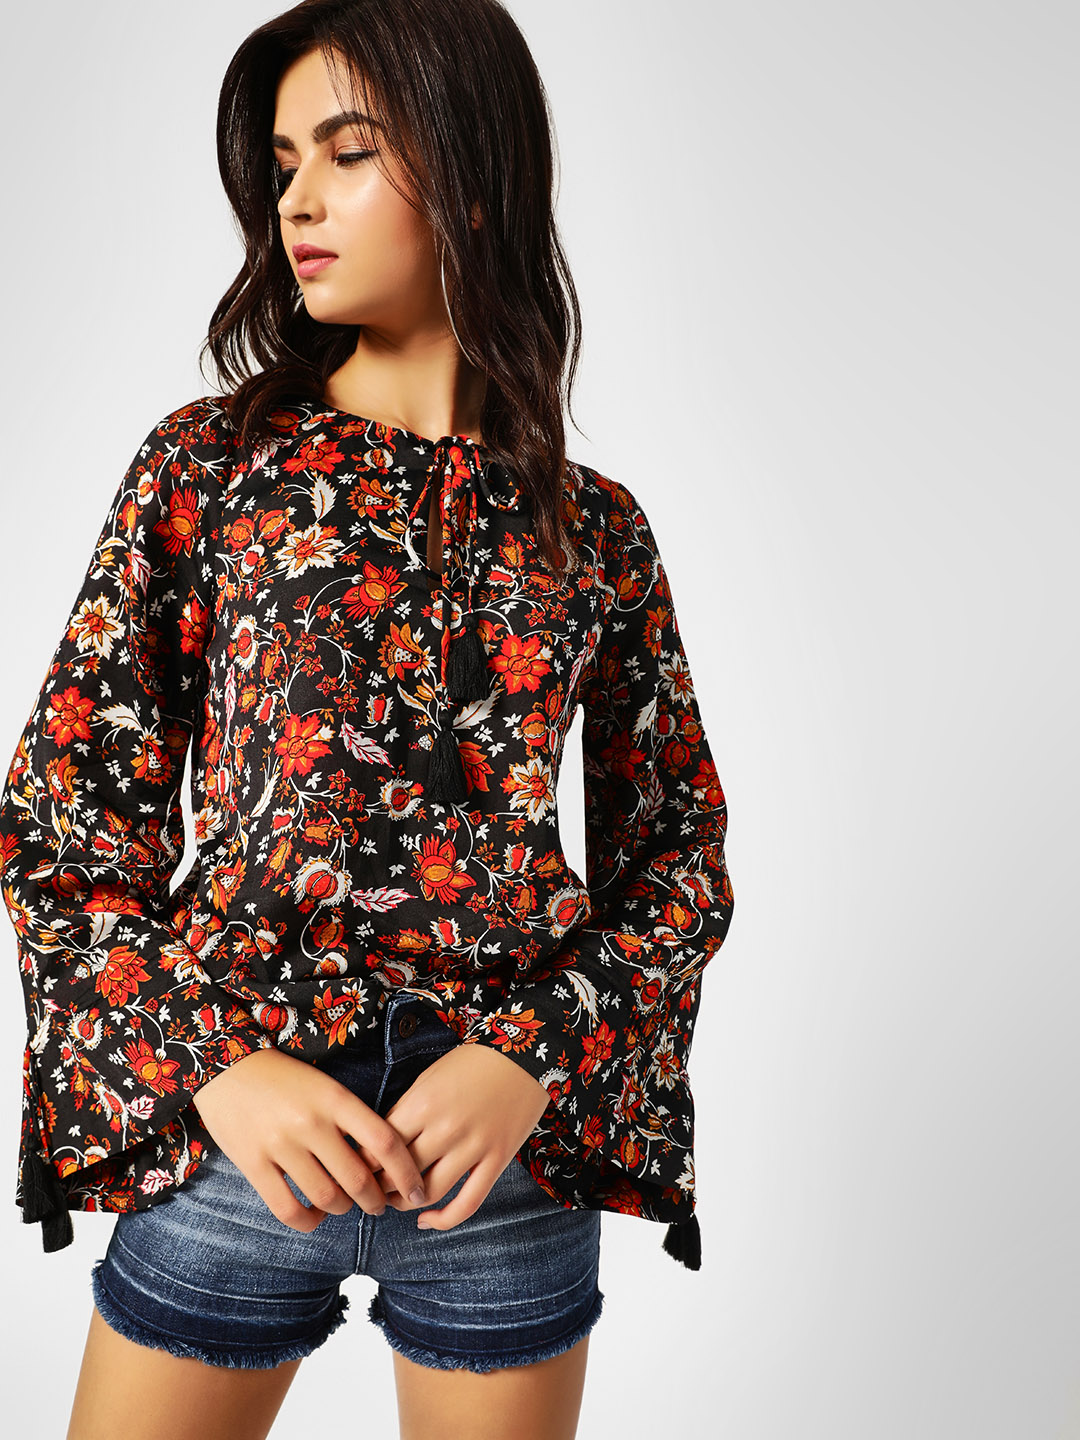 Cover Story Print Floral Print Front Tie Up Top 1